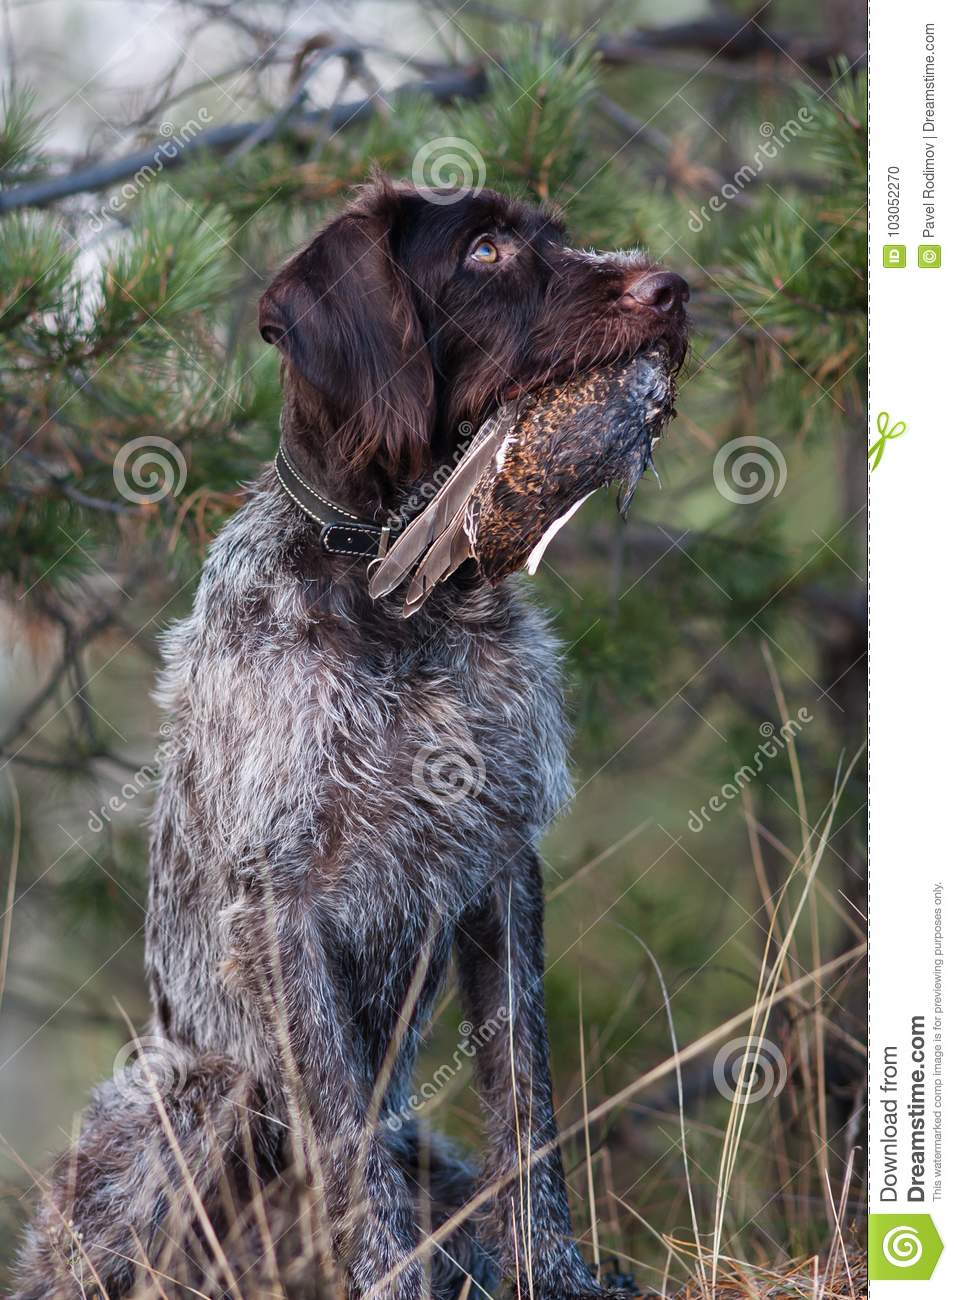 Hunting Dog With Grouse Wing Stock Photo - Image of brown, autumn ...